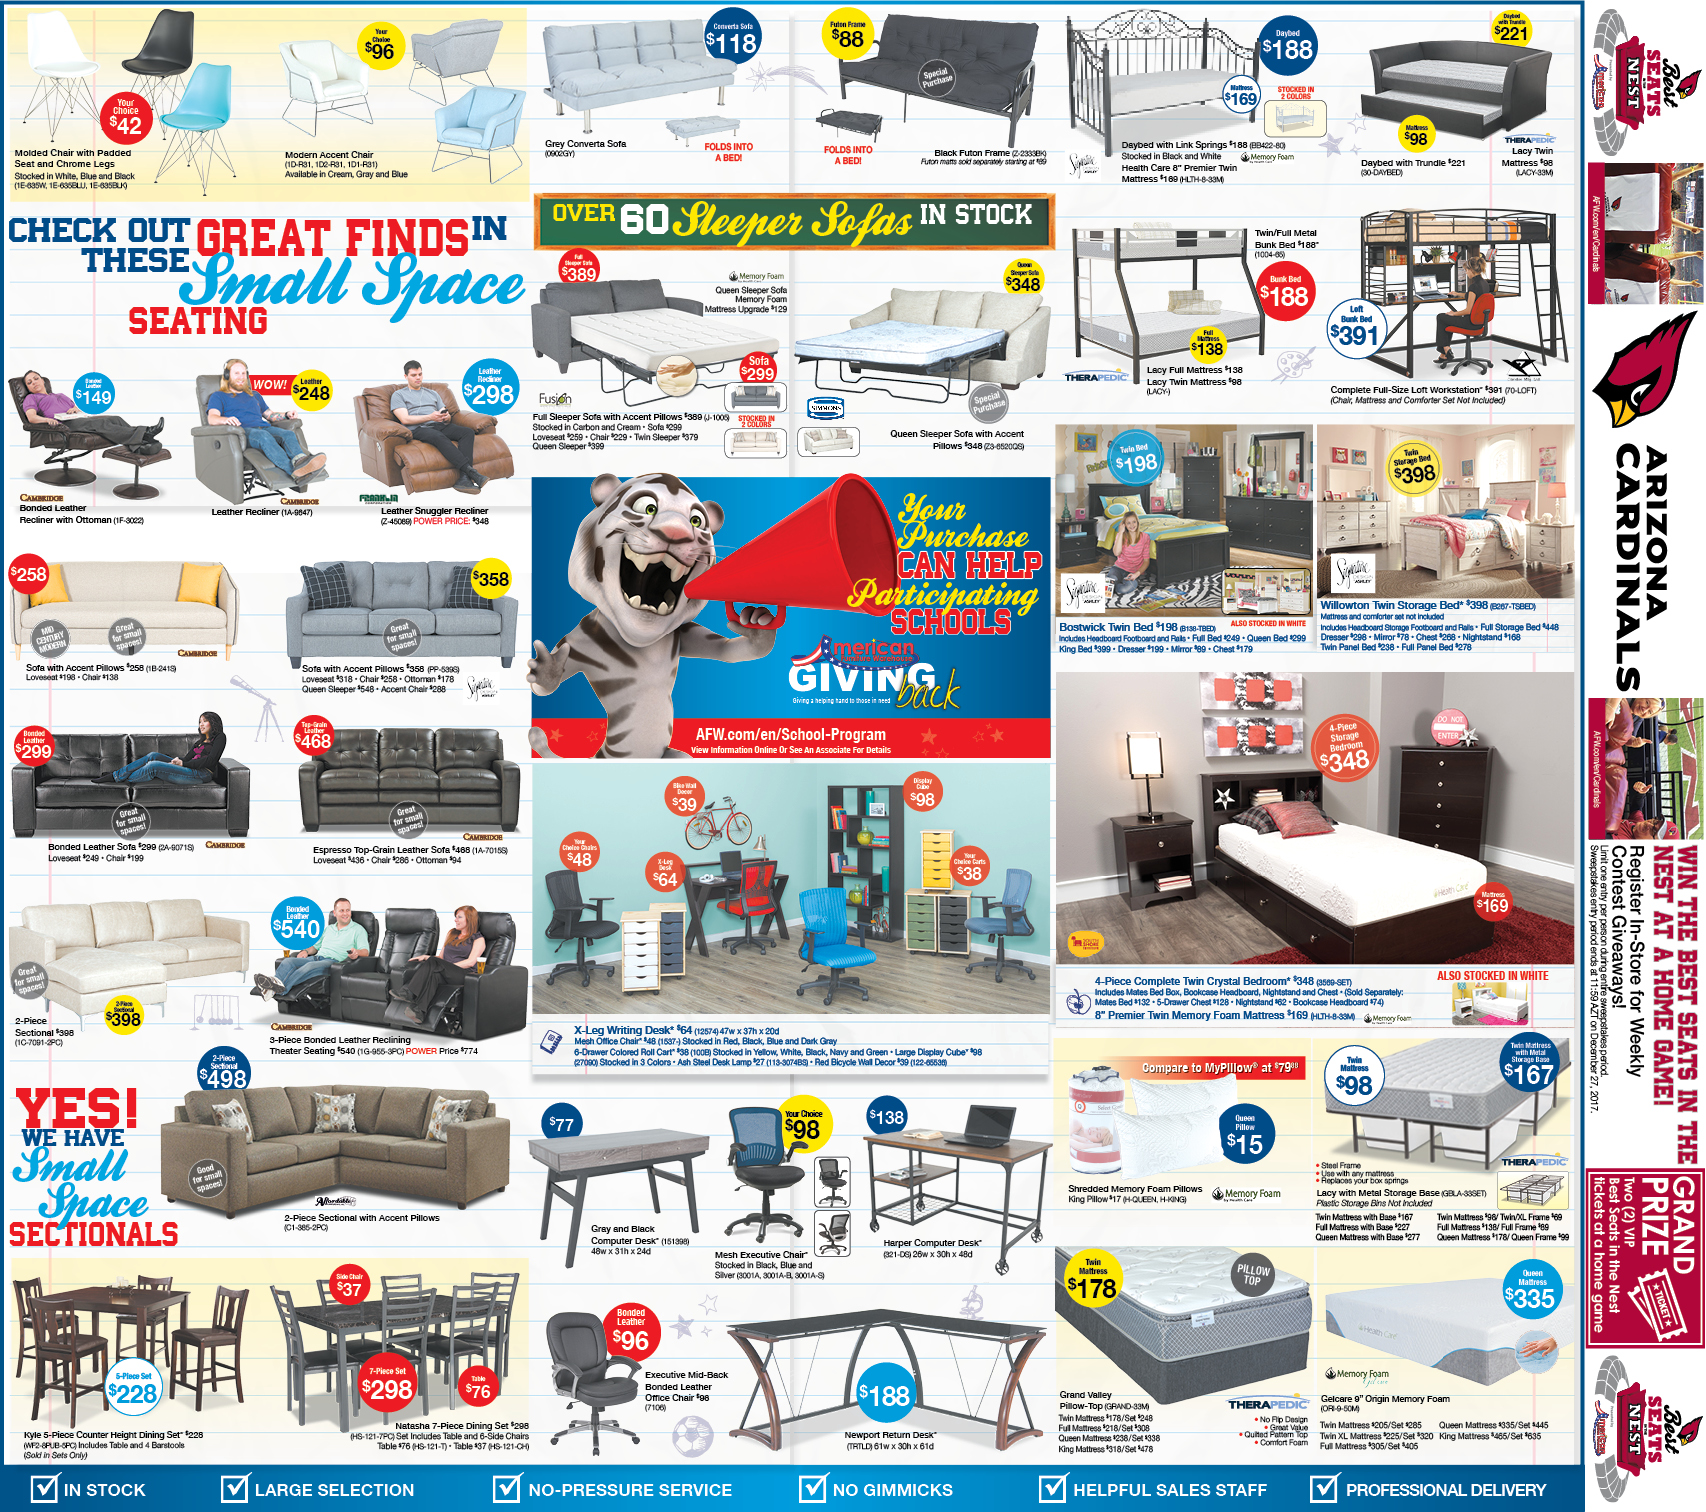 Arizona Hot Summer Savings Ads | Hot Buys & Large Selection in Mattresses and furniture